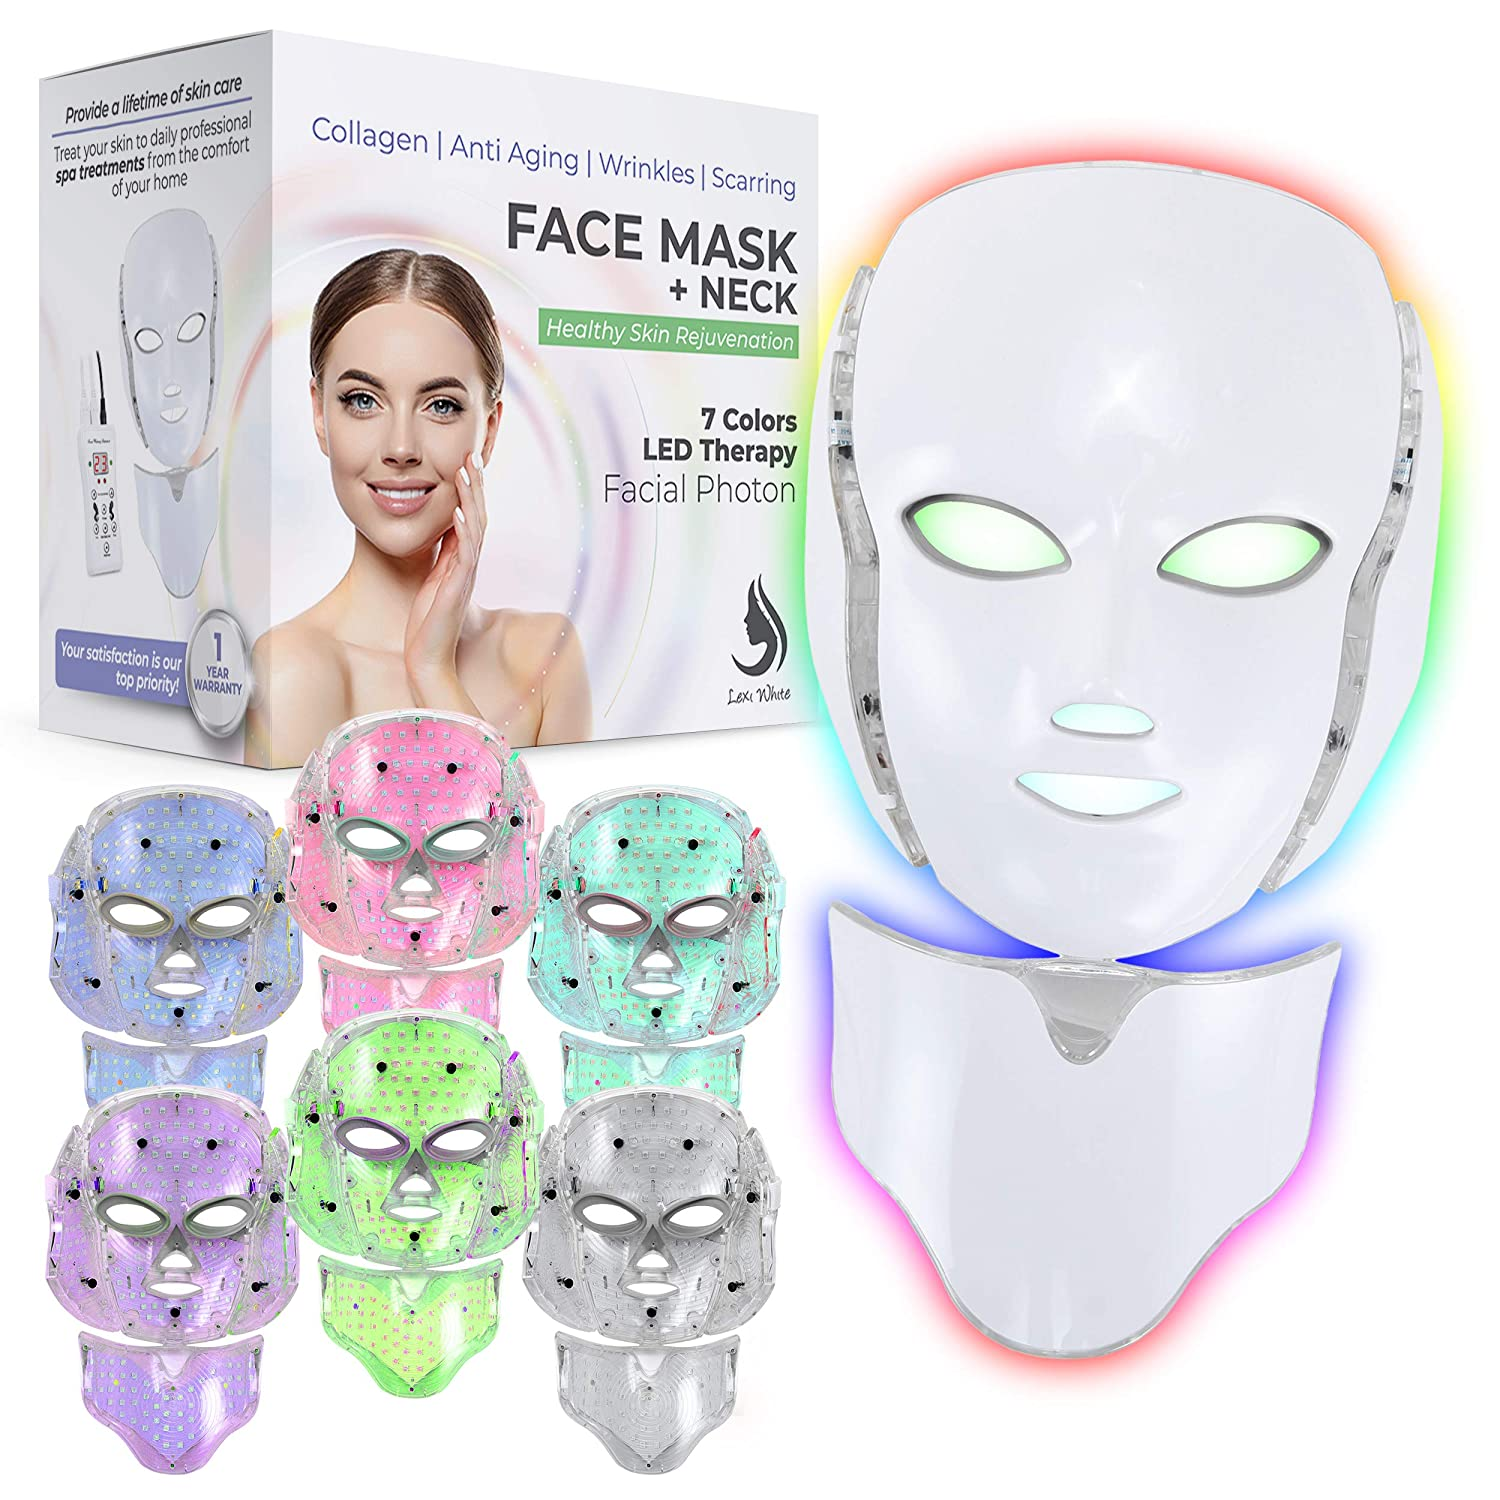 Red Light Therapy LED Face Mask Neck 7 Color   LED Mask Therapy Facial Photon For Healthy Skin Rejuvenation   Collagen, Anti Aging, Wrinkles, Scarring   Korean Skin Care, Facial Skin Care Mask (Off-white)